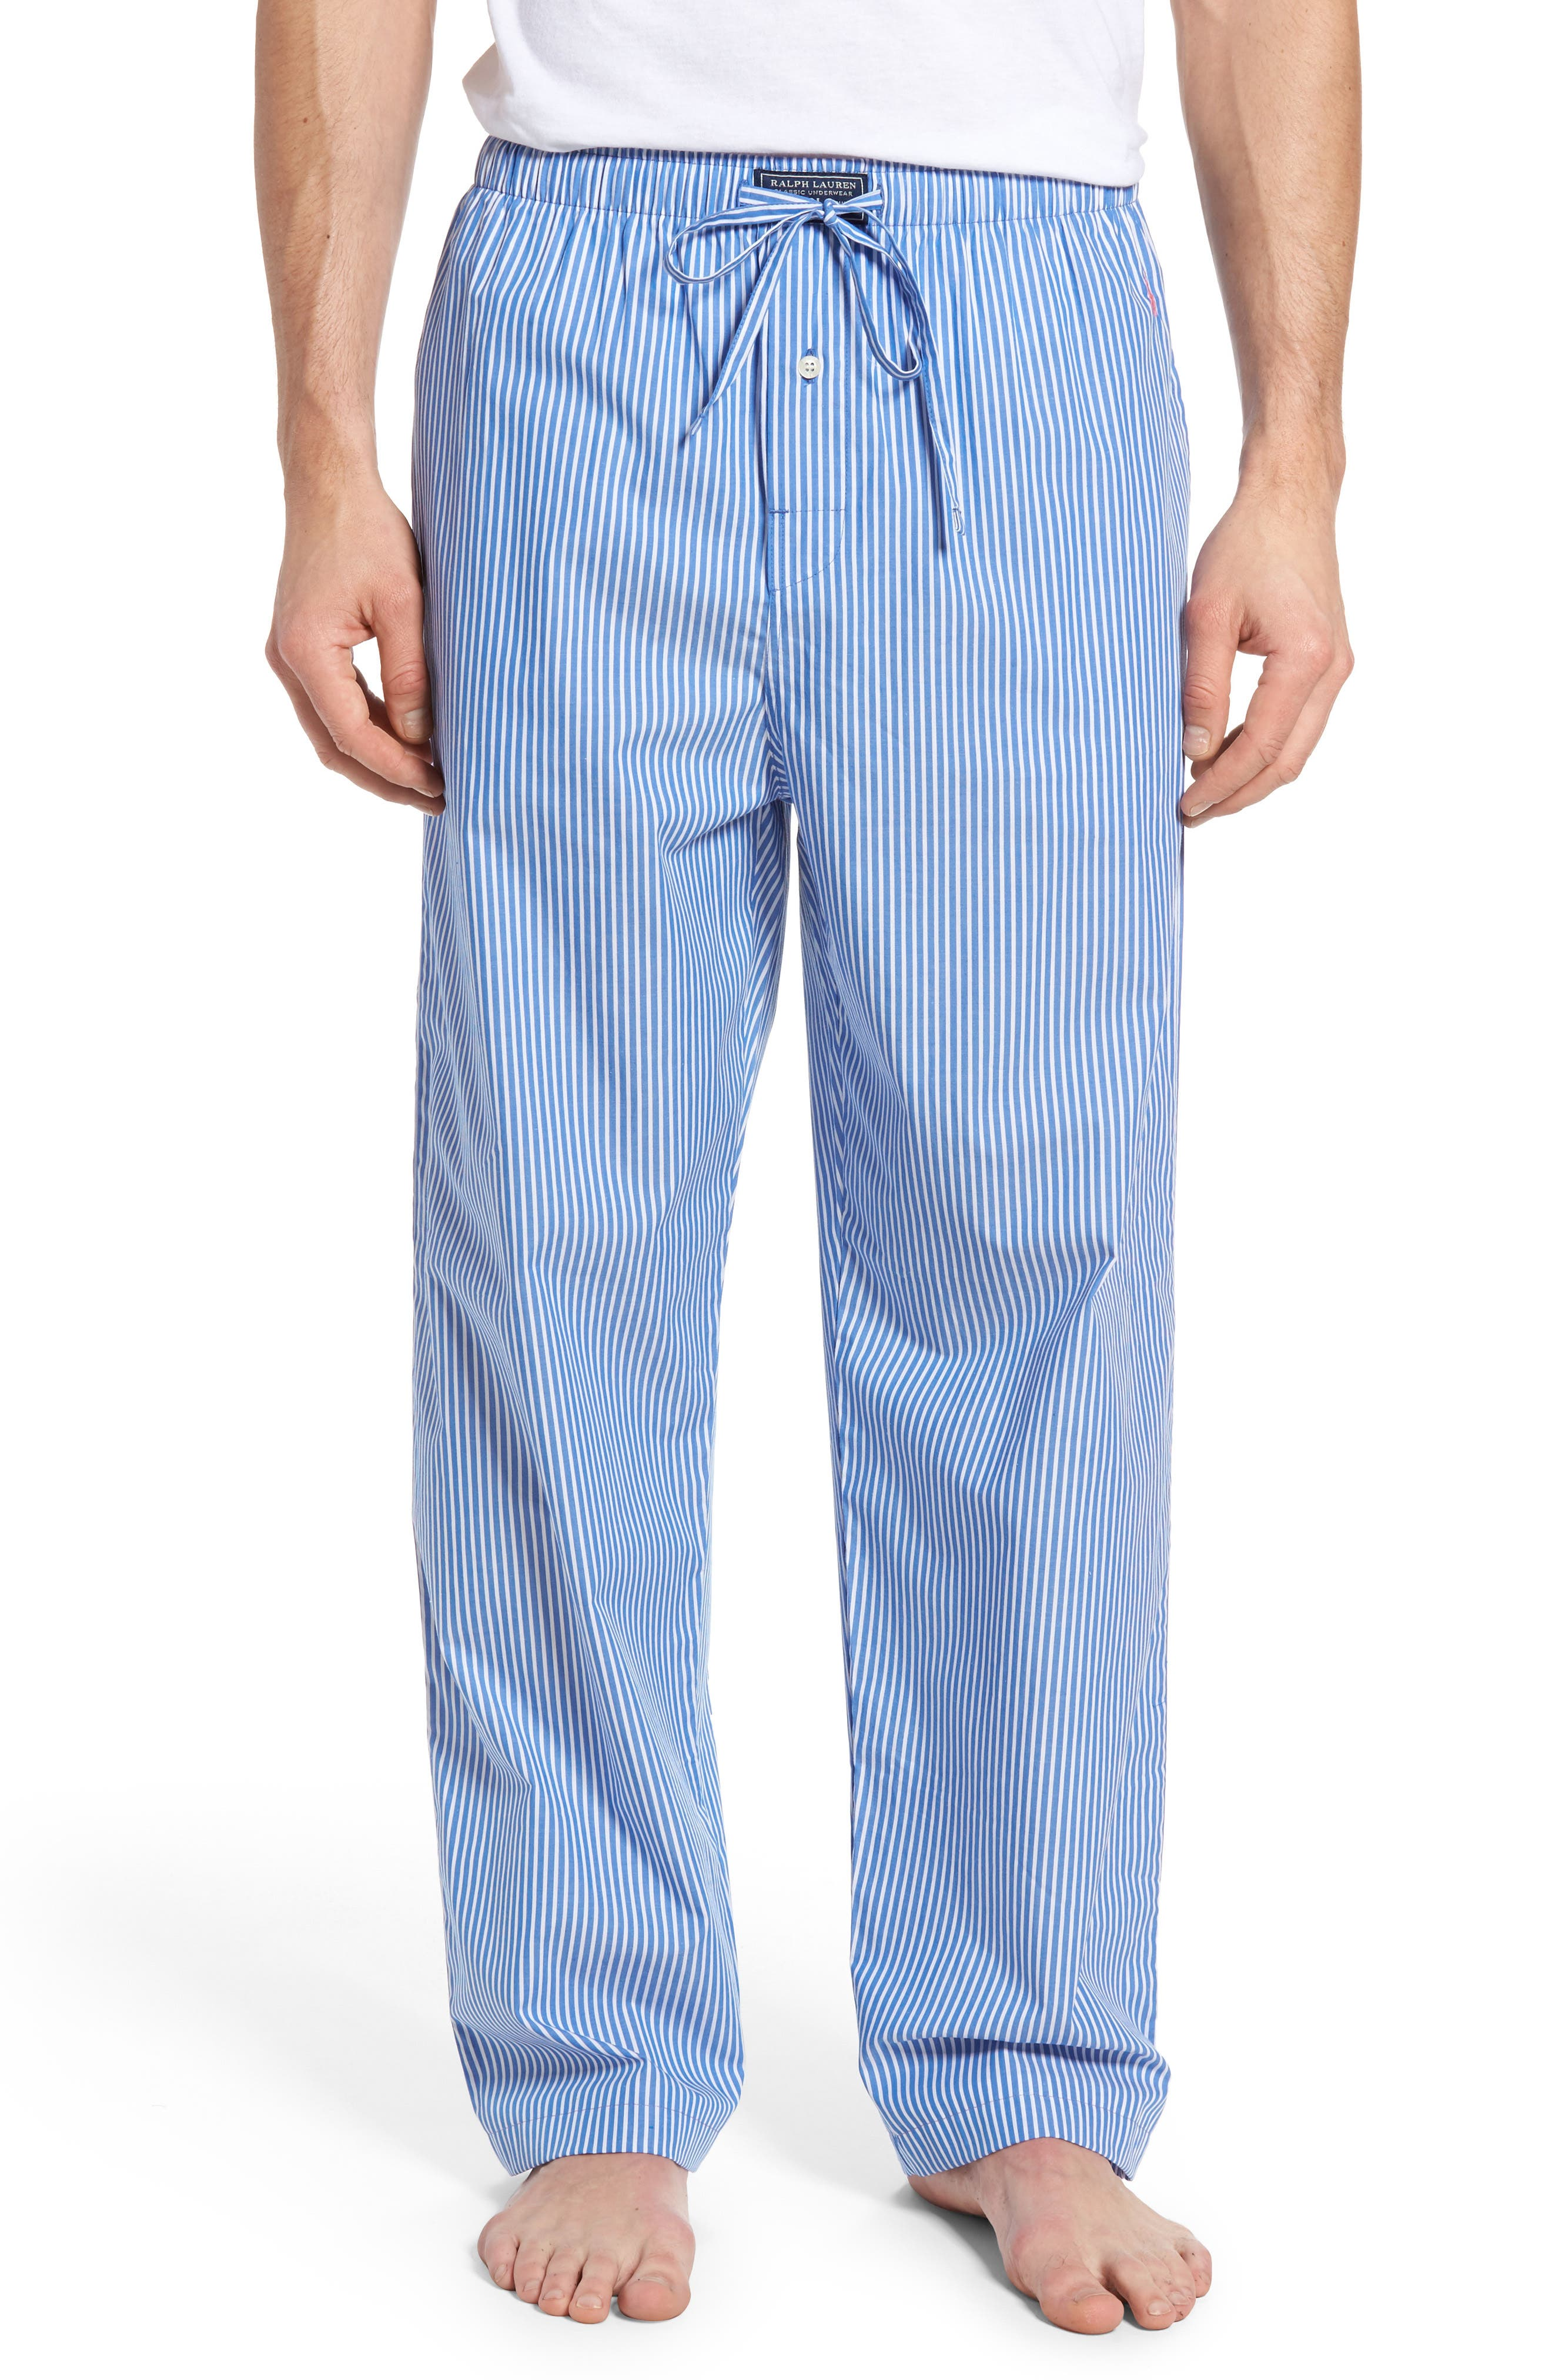 Cotton Lounge Pants,                             Main thumbnail 1, color,                             King Blue Stripe